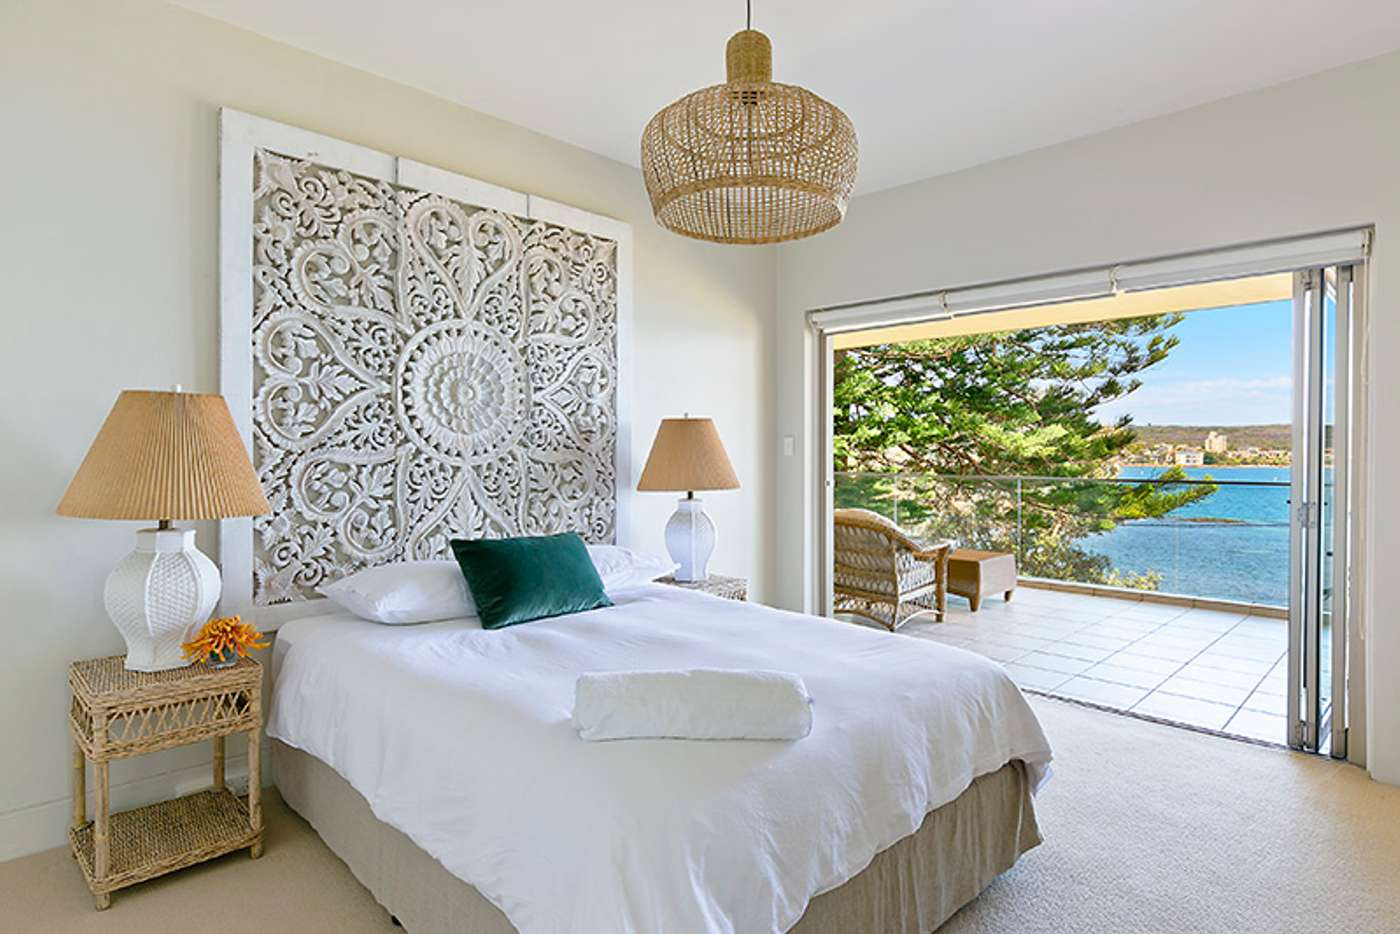 Main view of Homely apartment listing, 3/9 Fairlight Crescent, Fairlight NSW 2094